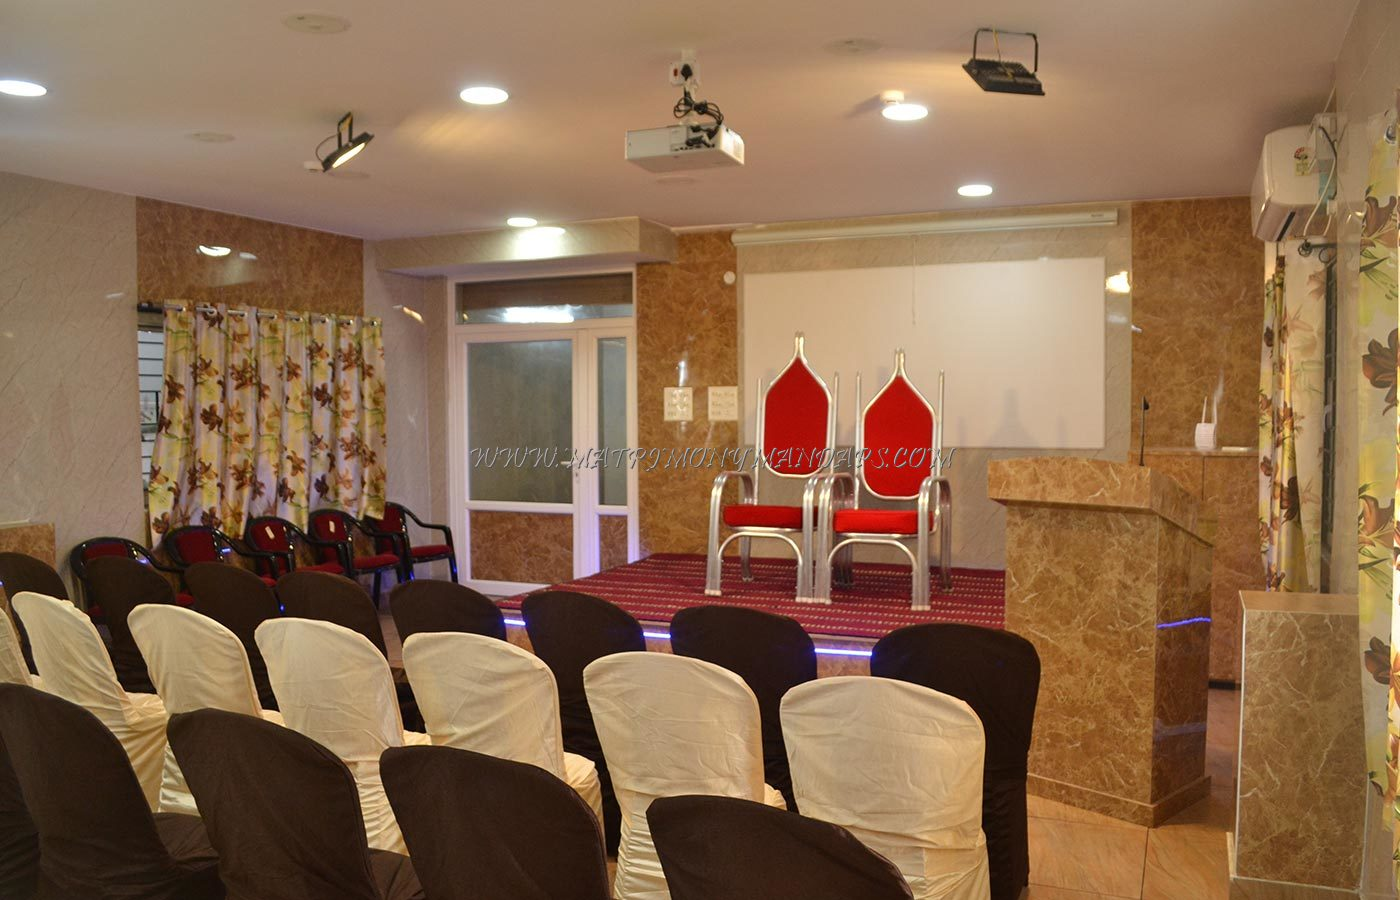 Find the availability of the Bay View Hall (A/C) in White Town, Pondicherry and avail special offers